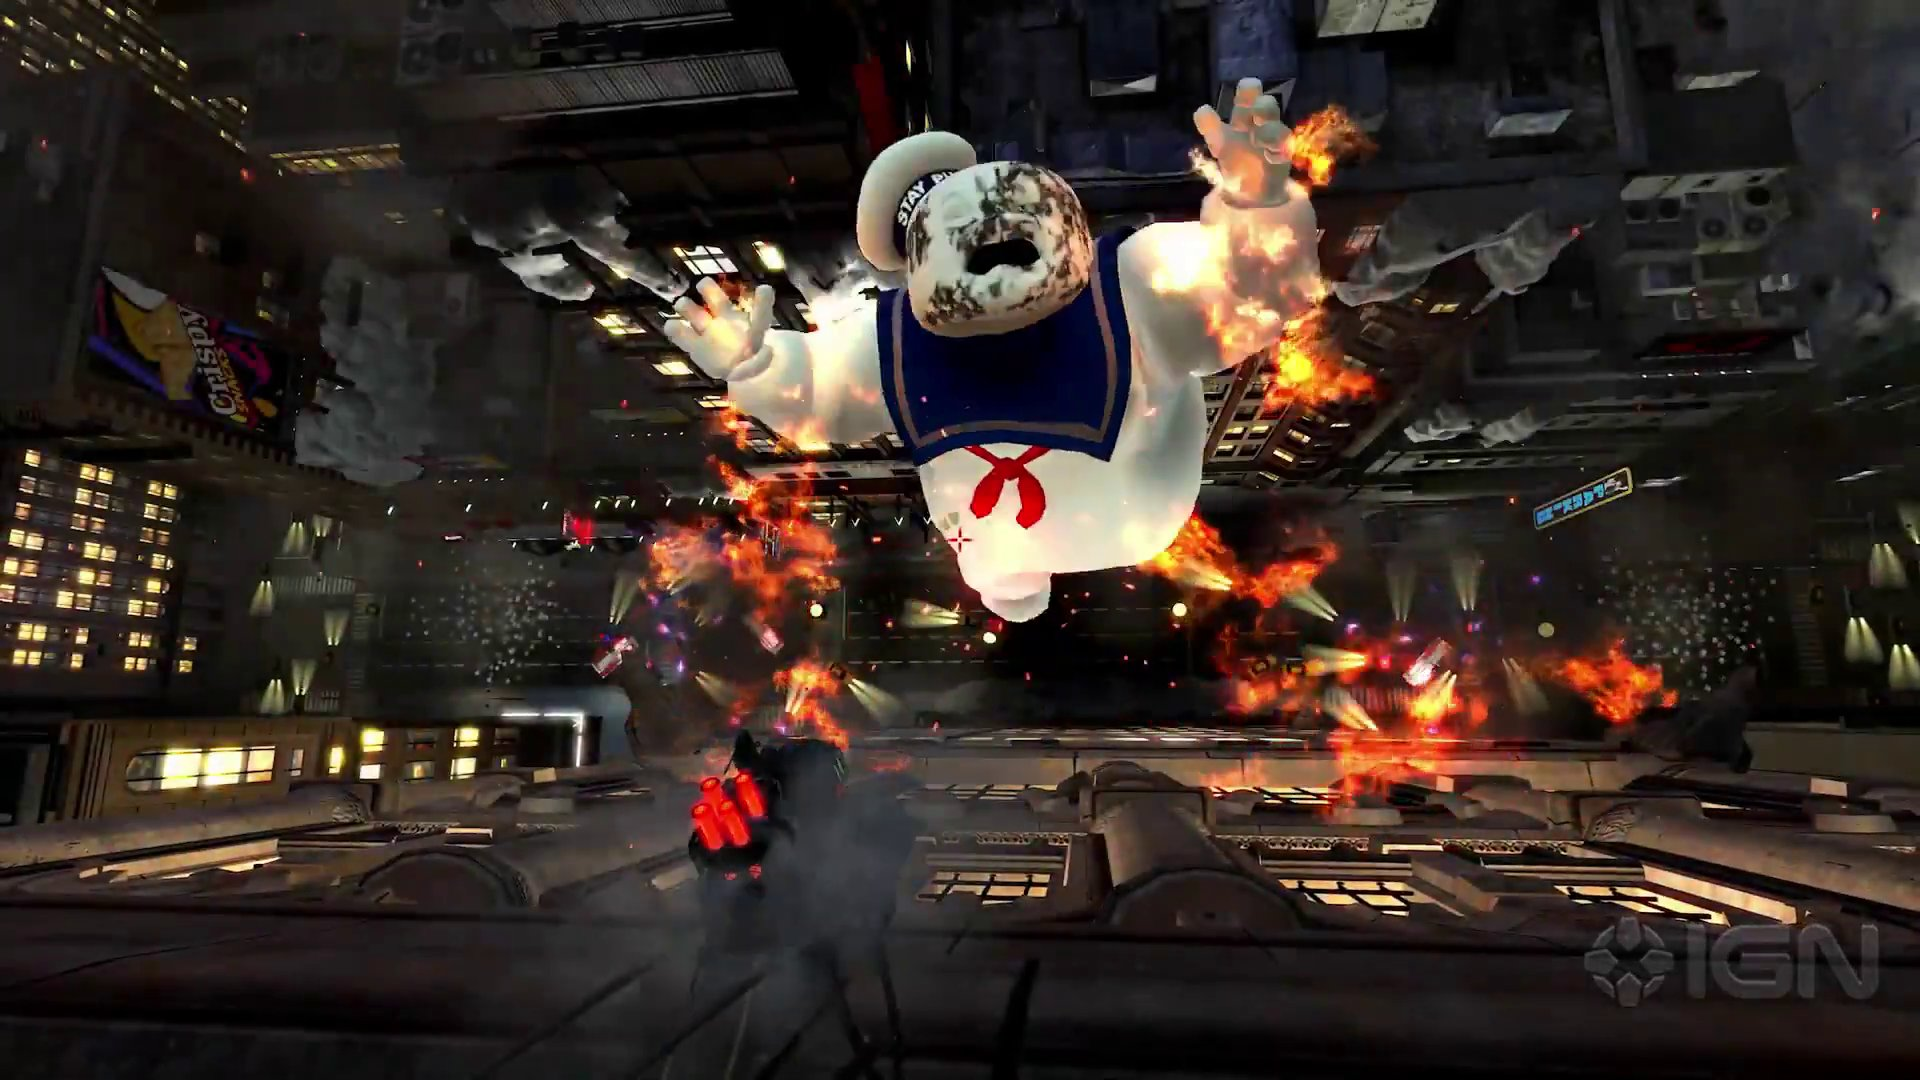 novoe-video-budushchego-remastera-ghostbusters-the-video-game-remastere